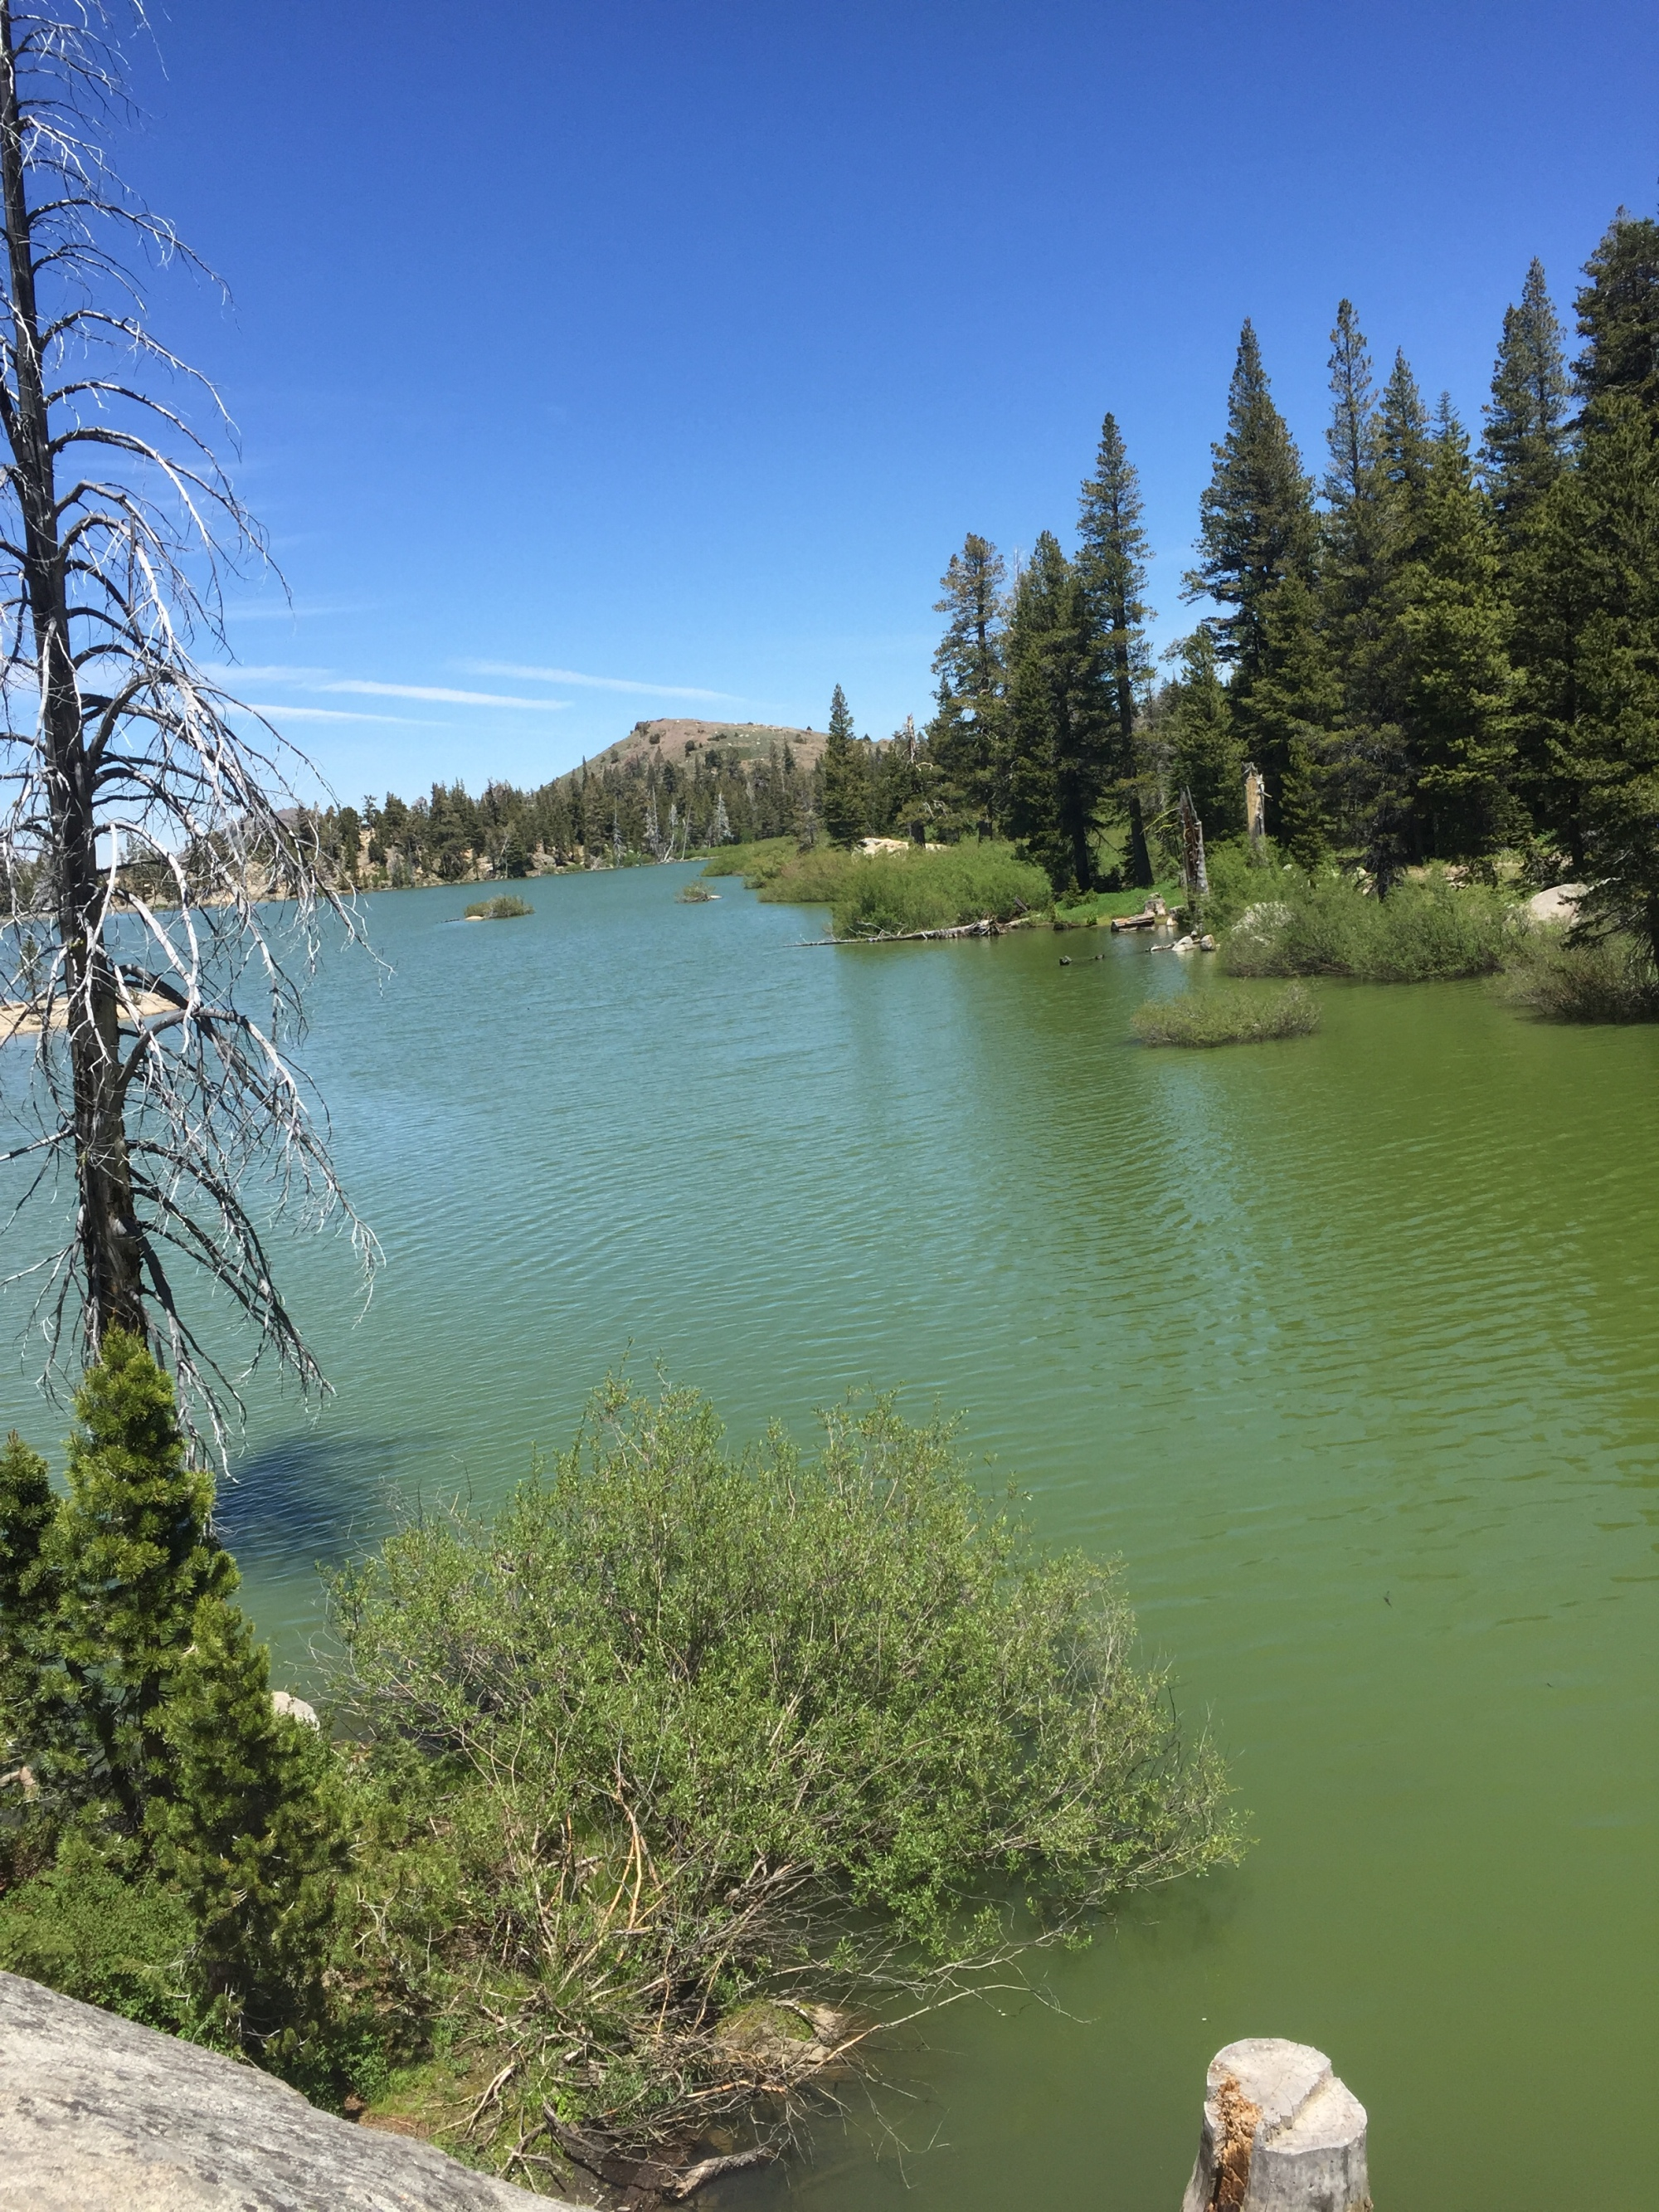 Green water, reduced visibility and surface scum are among the signs that a harmful algal bloom -- or HAB -- could be present in a freshwater environment.